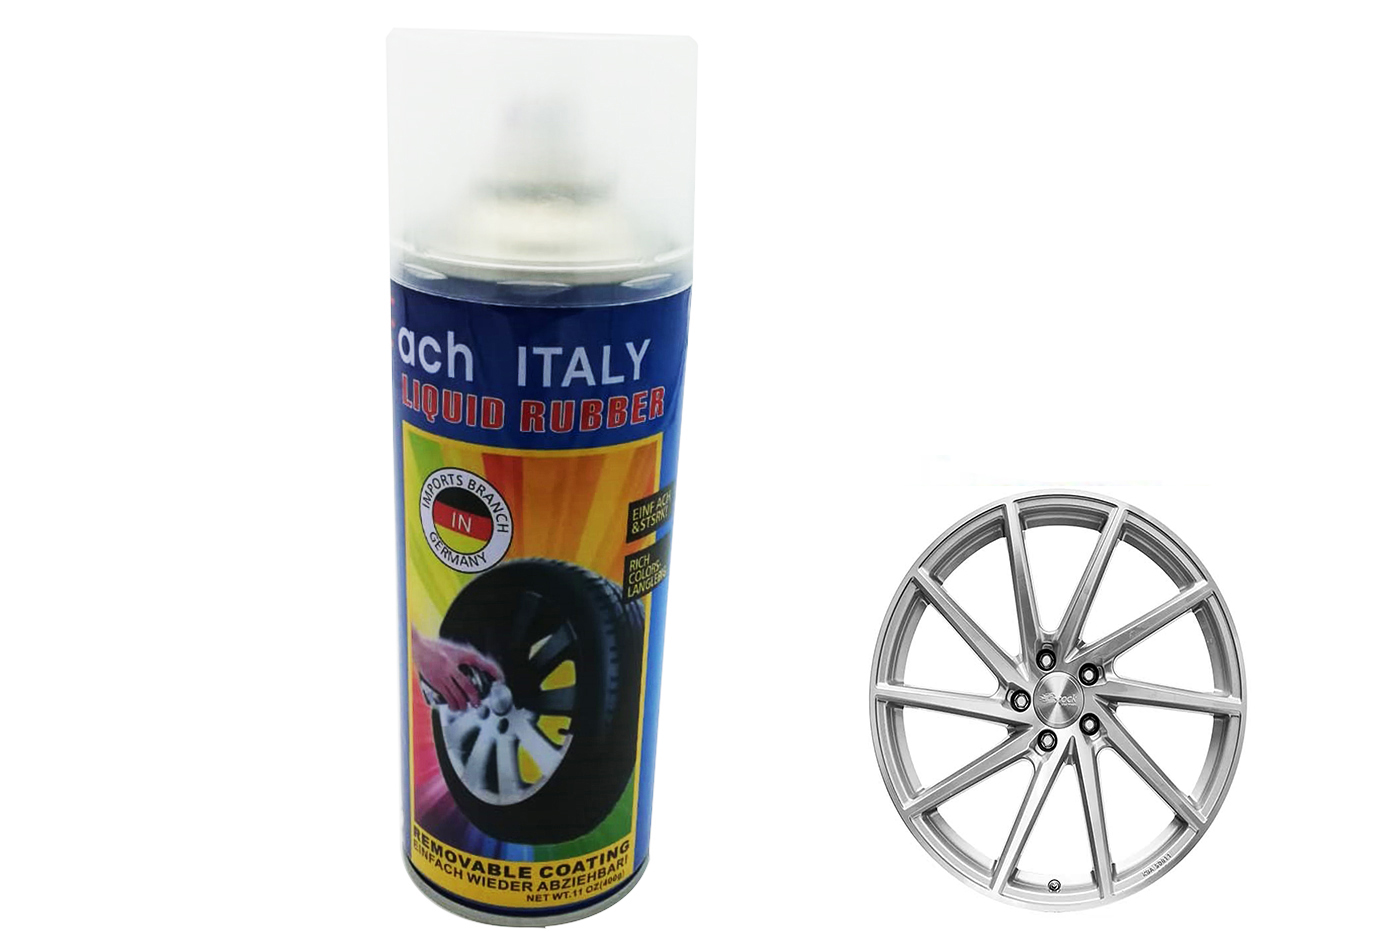 Spray vernice pittura cerchi auto pellicola removibile flash silver KC36 400g